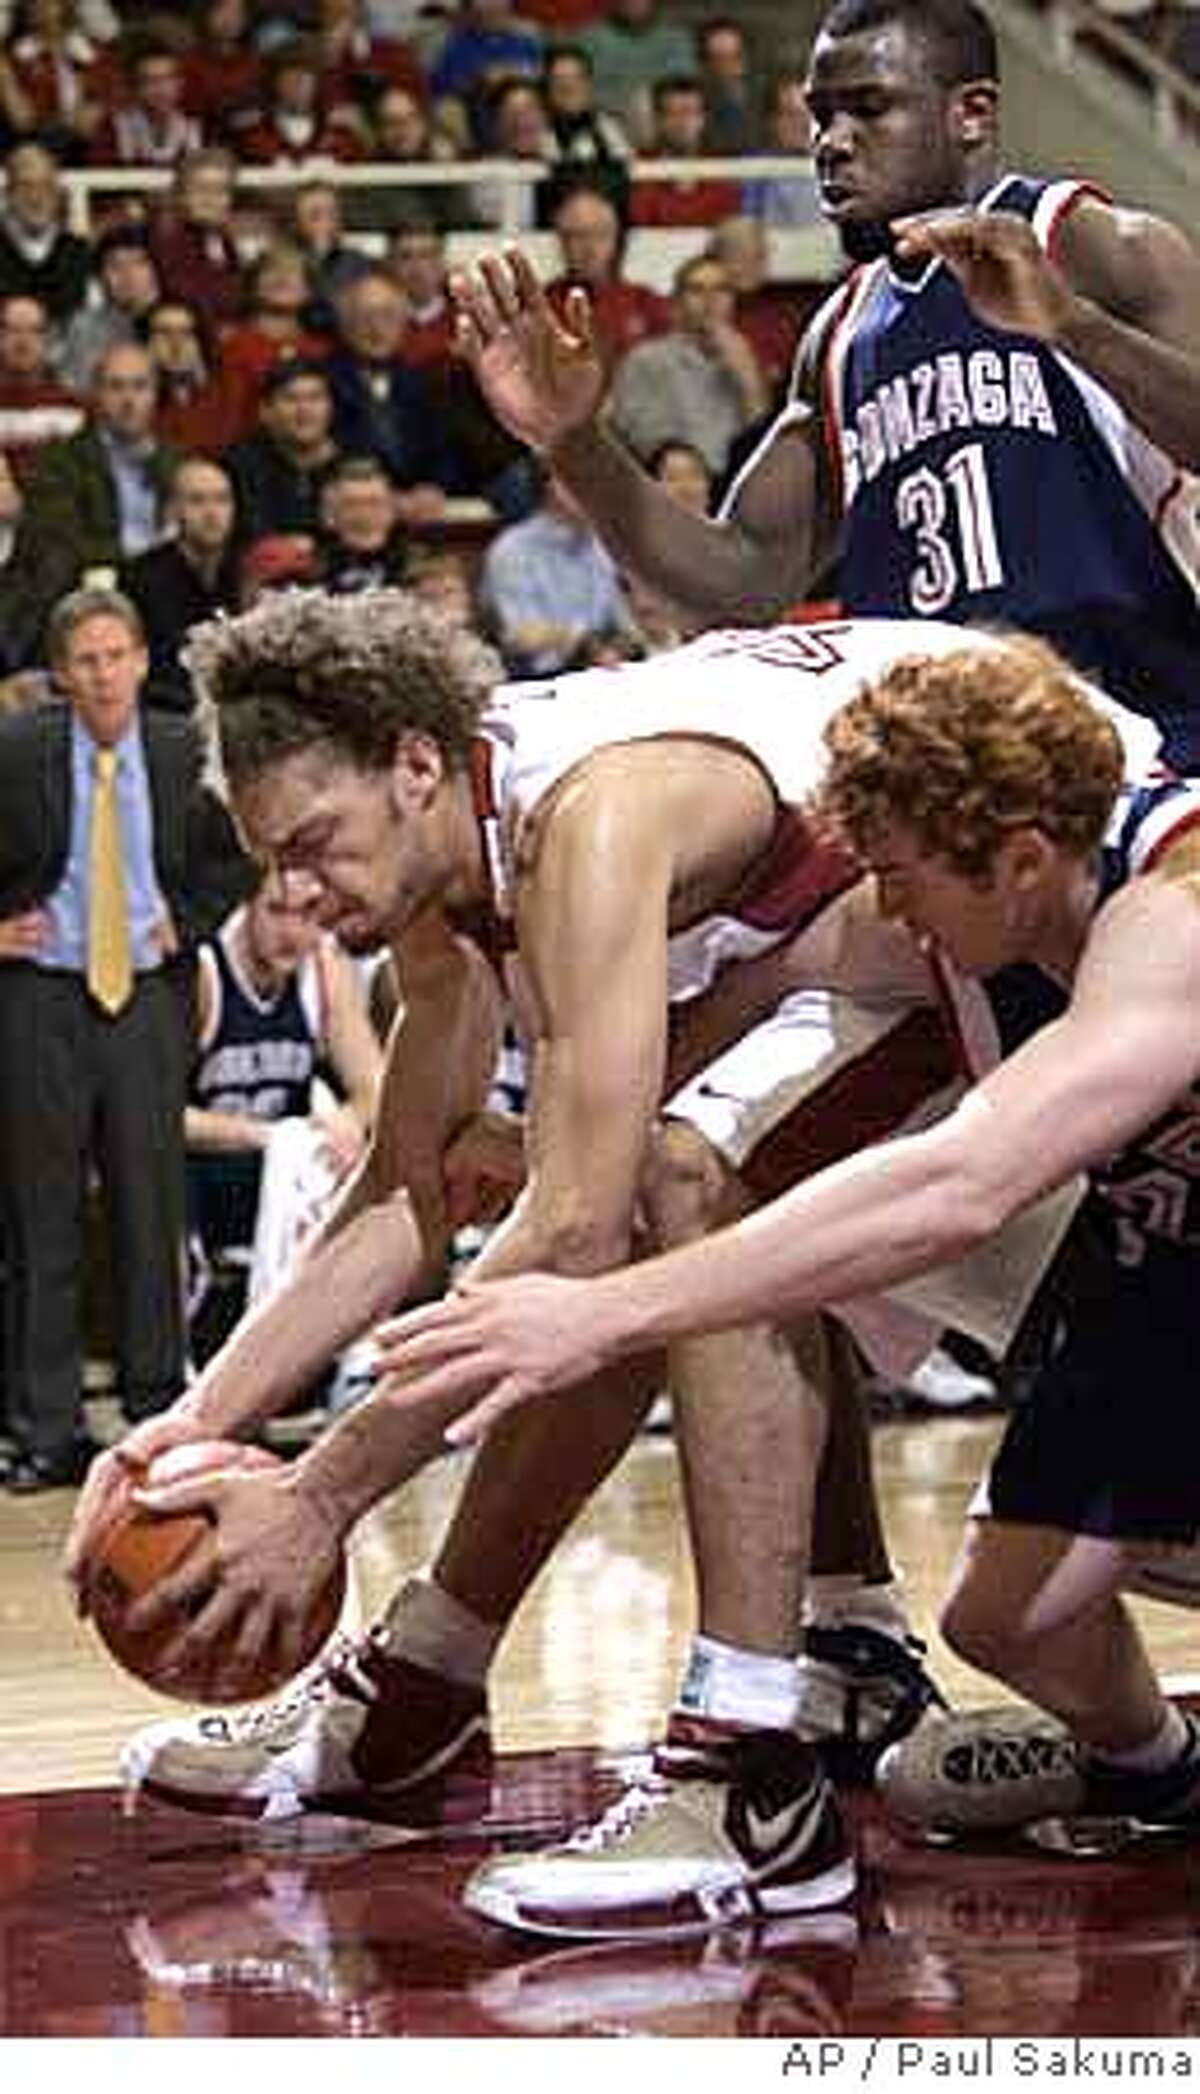 Stanford center Robin Lopez, left, grabs the ball in front of Gonzaga guard David Pendergraft, right, in the first half of their NCAA basketball game in Stanford, Calif., Thursday, Jan. 31, 2007. (AP Photo/Paul Sakuma)